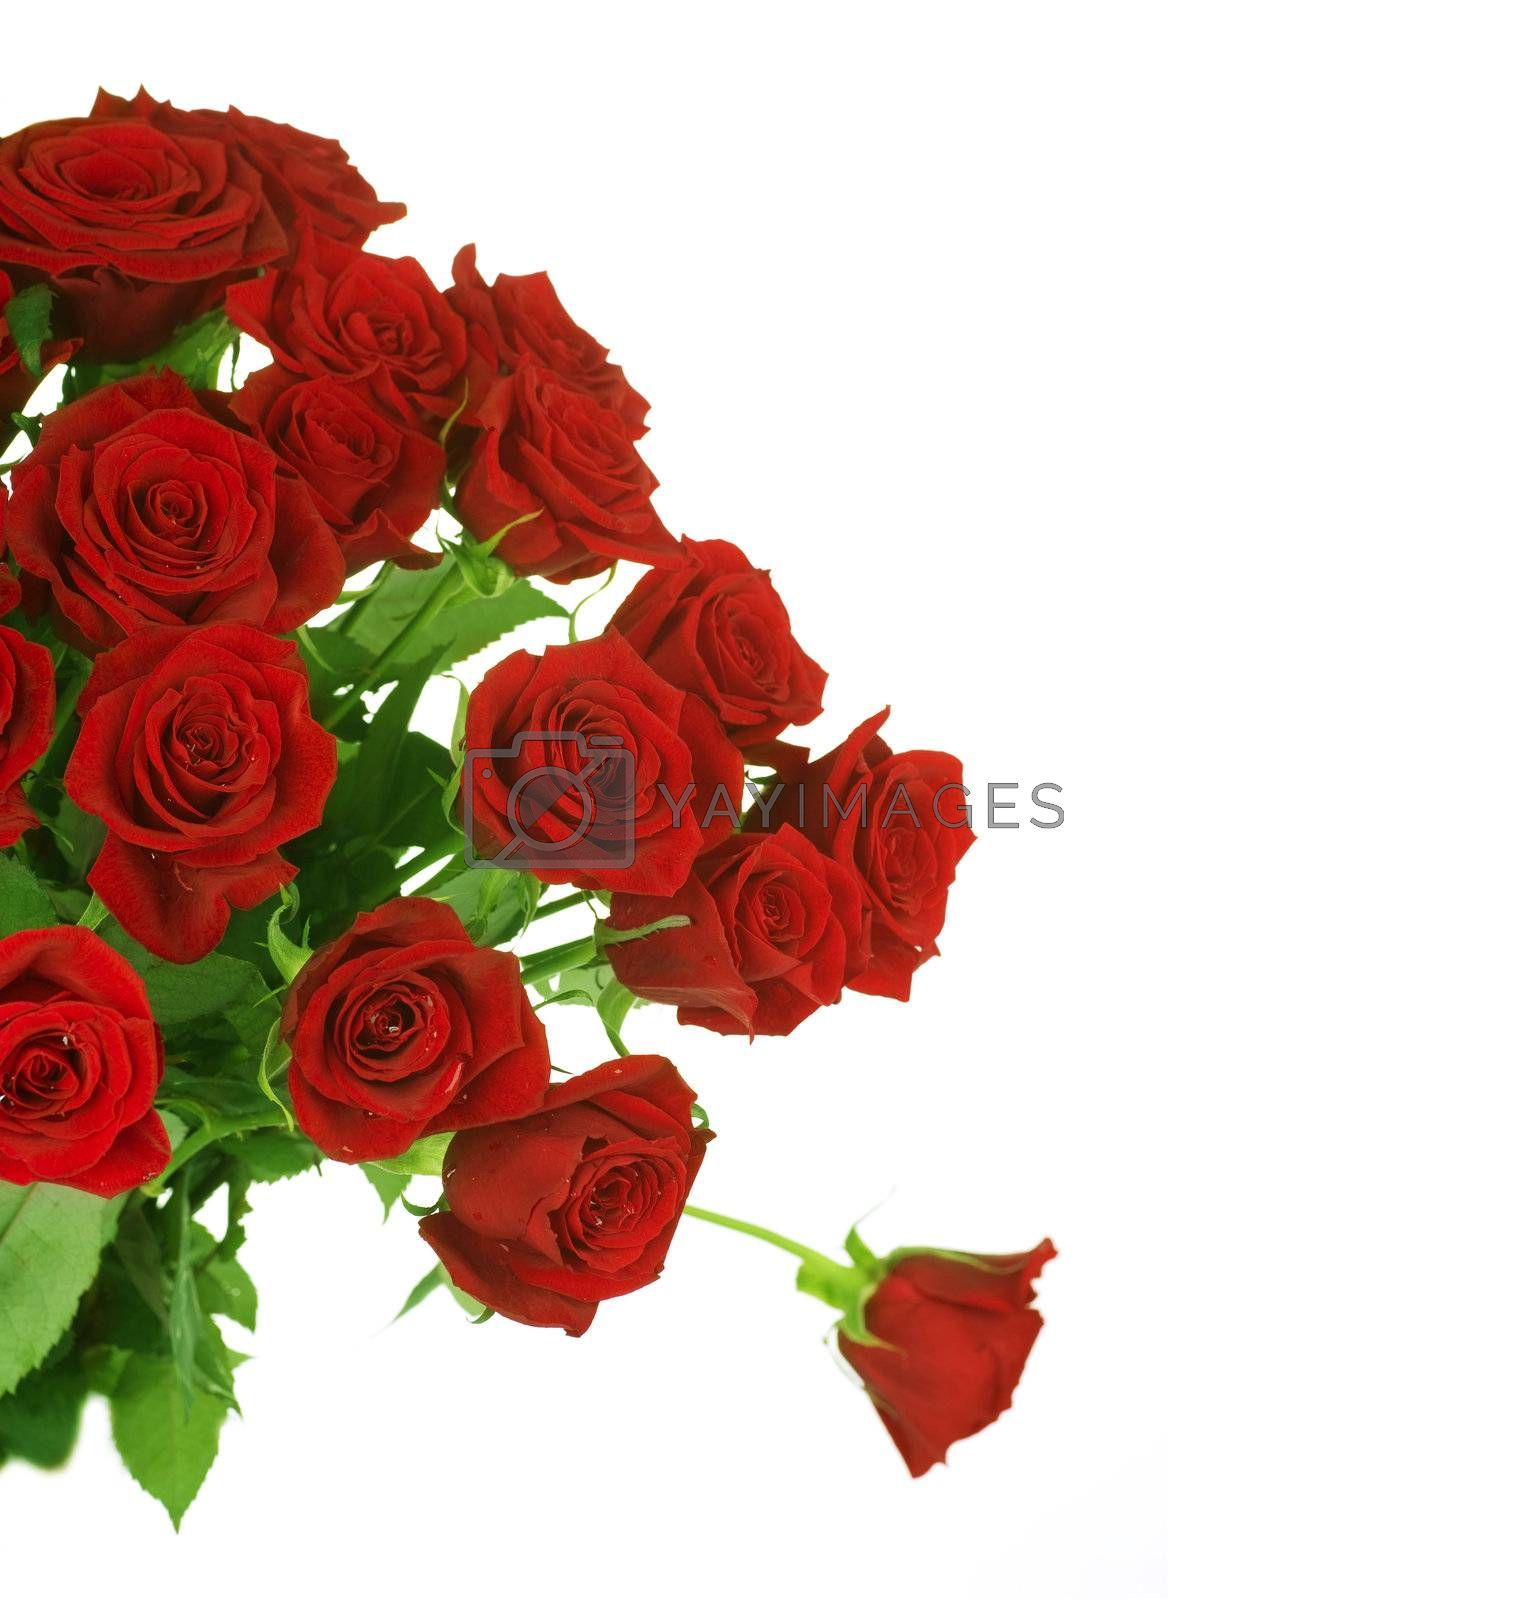 Red Roses border over white by Subbotina Anna